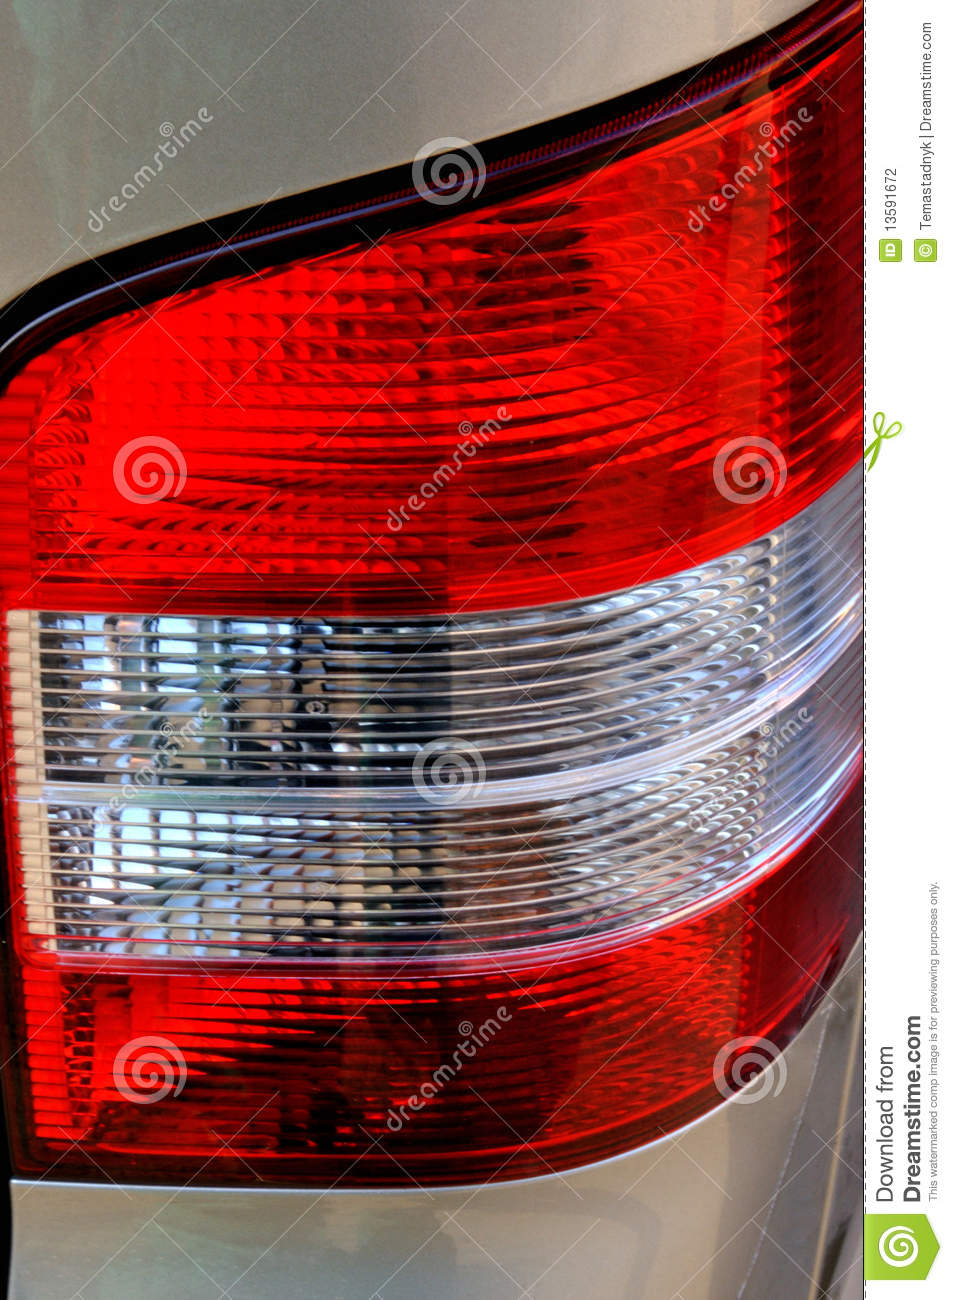 Charming Download The Brake Light Assembly Of A Modern Automobile Stock Photo    Image Of Shiny, Idea